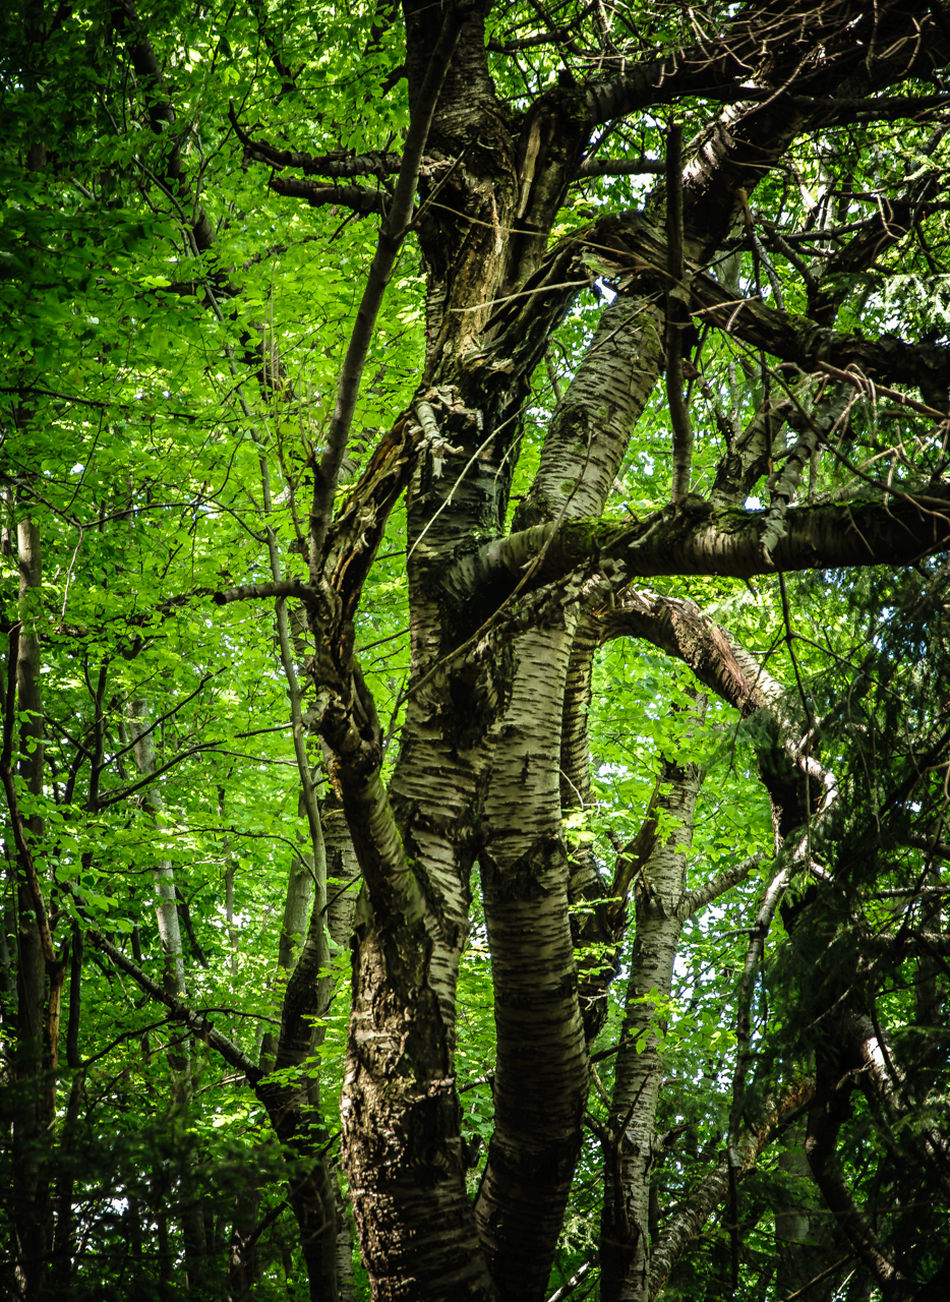 Beauty In Nature Branch Forest Green Color Growth Lush Foliage Nature No People Outdoors Tranquil Scene Tree Vitosha Mountain Sofia, Bulgaria